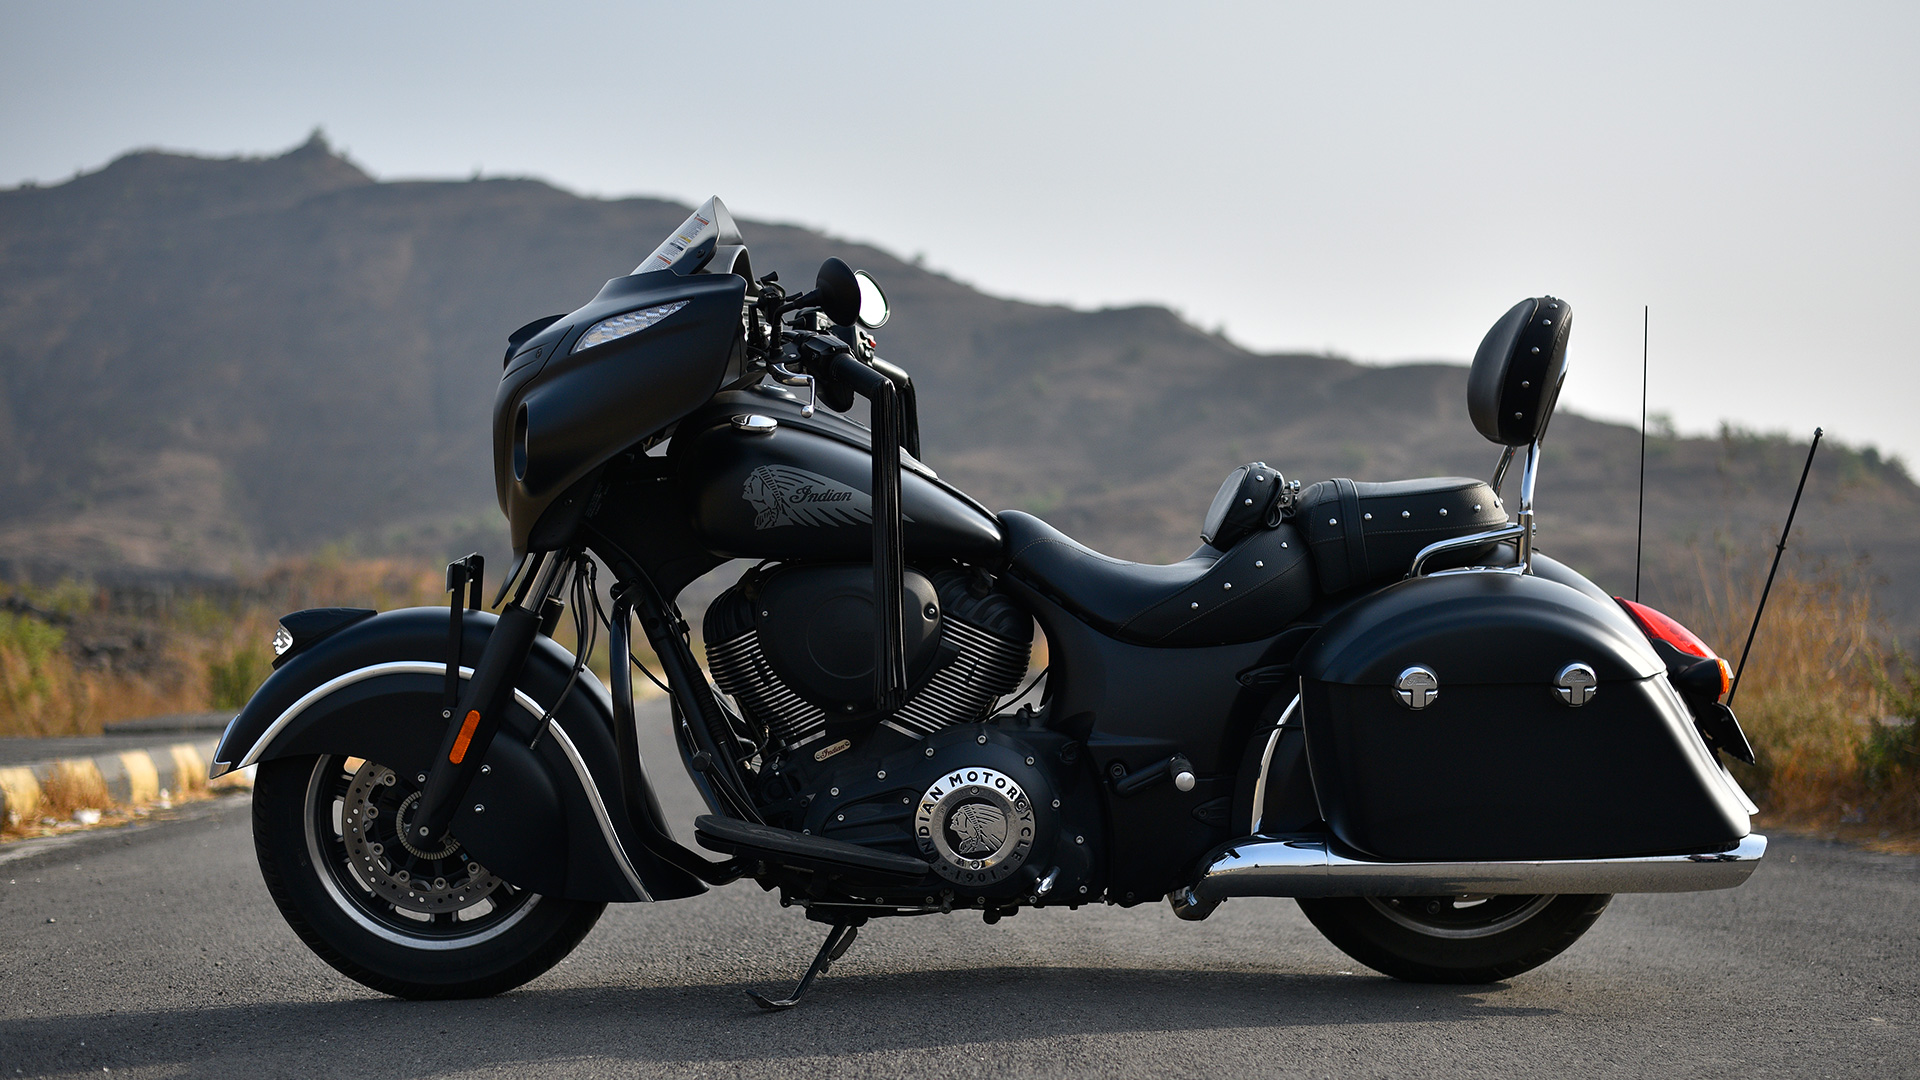 indian chieftain 2016 dark horse price mileage reviews specification gallery overdrive. Black Bedroom Furniture Sets. Home Design Ideas